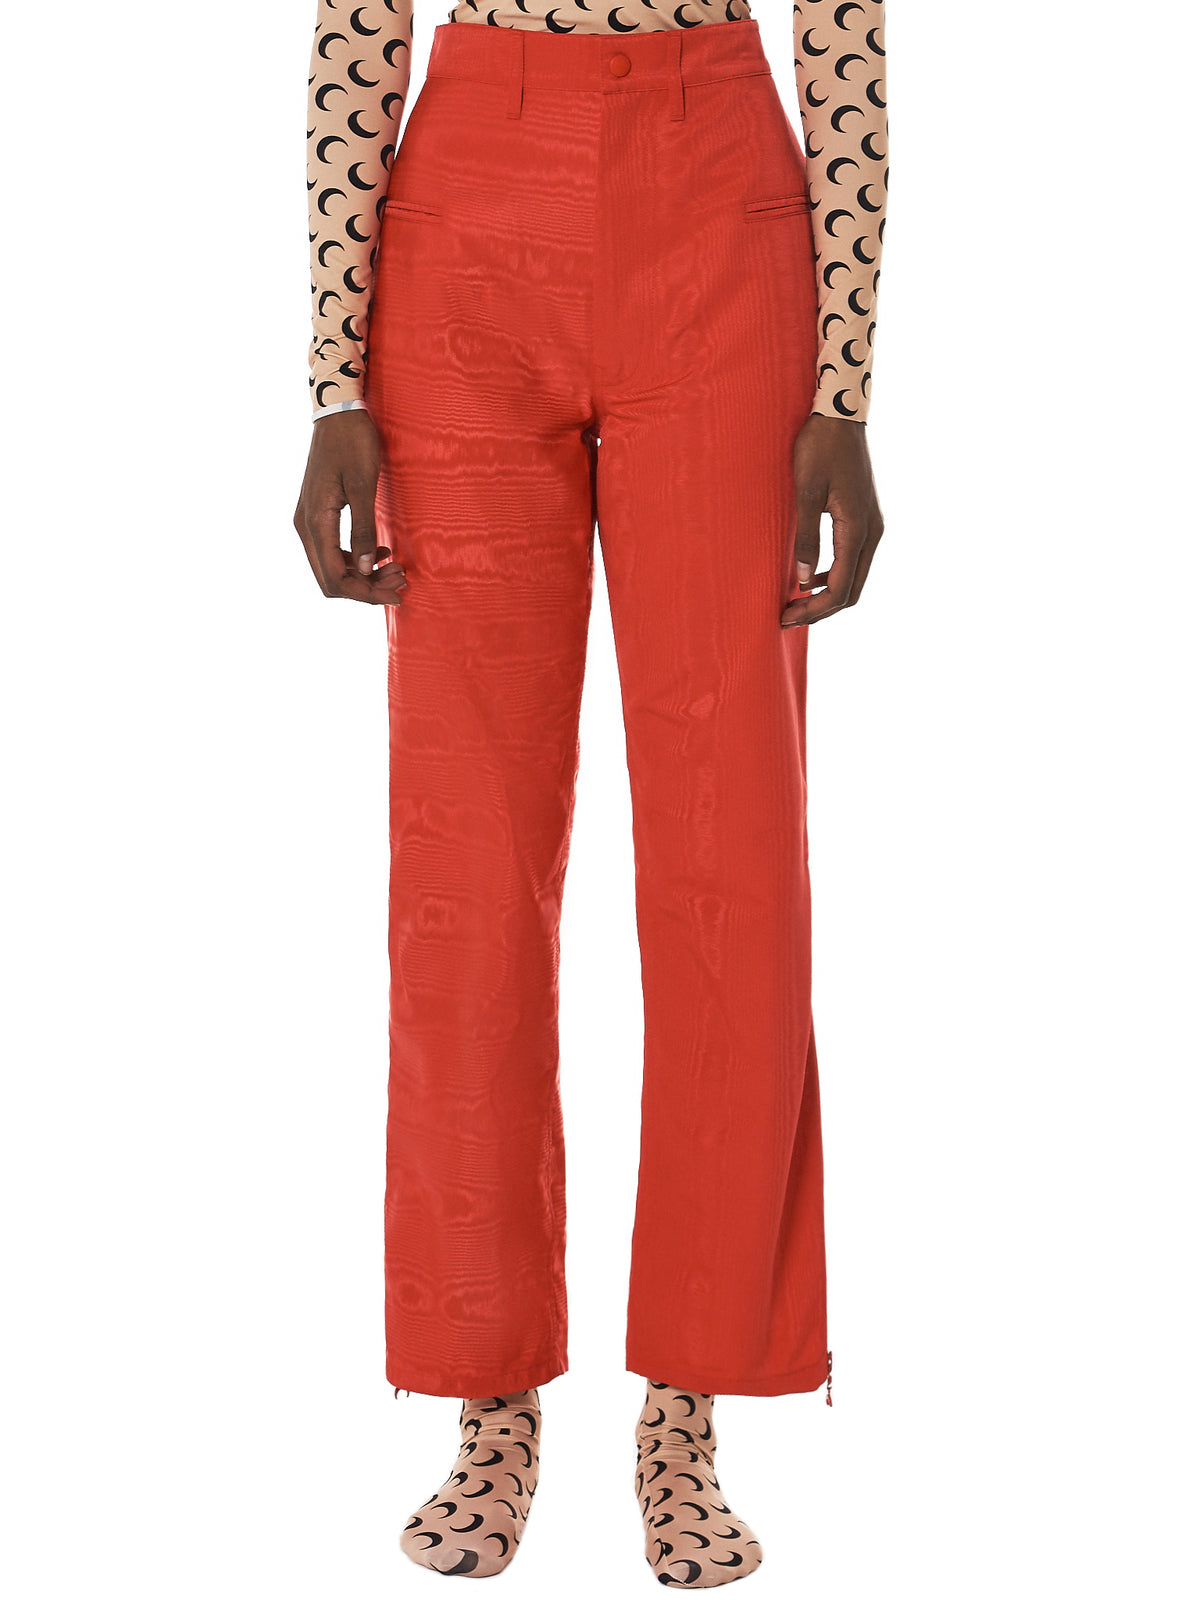 Marine Serre Moire Trousers - Hlorenzo Front